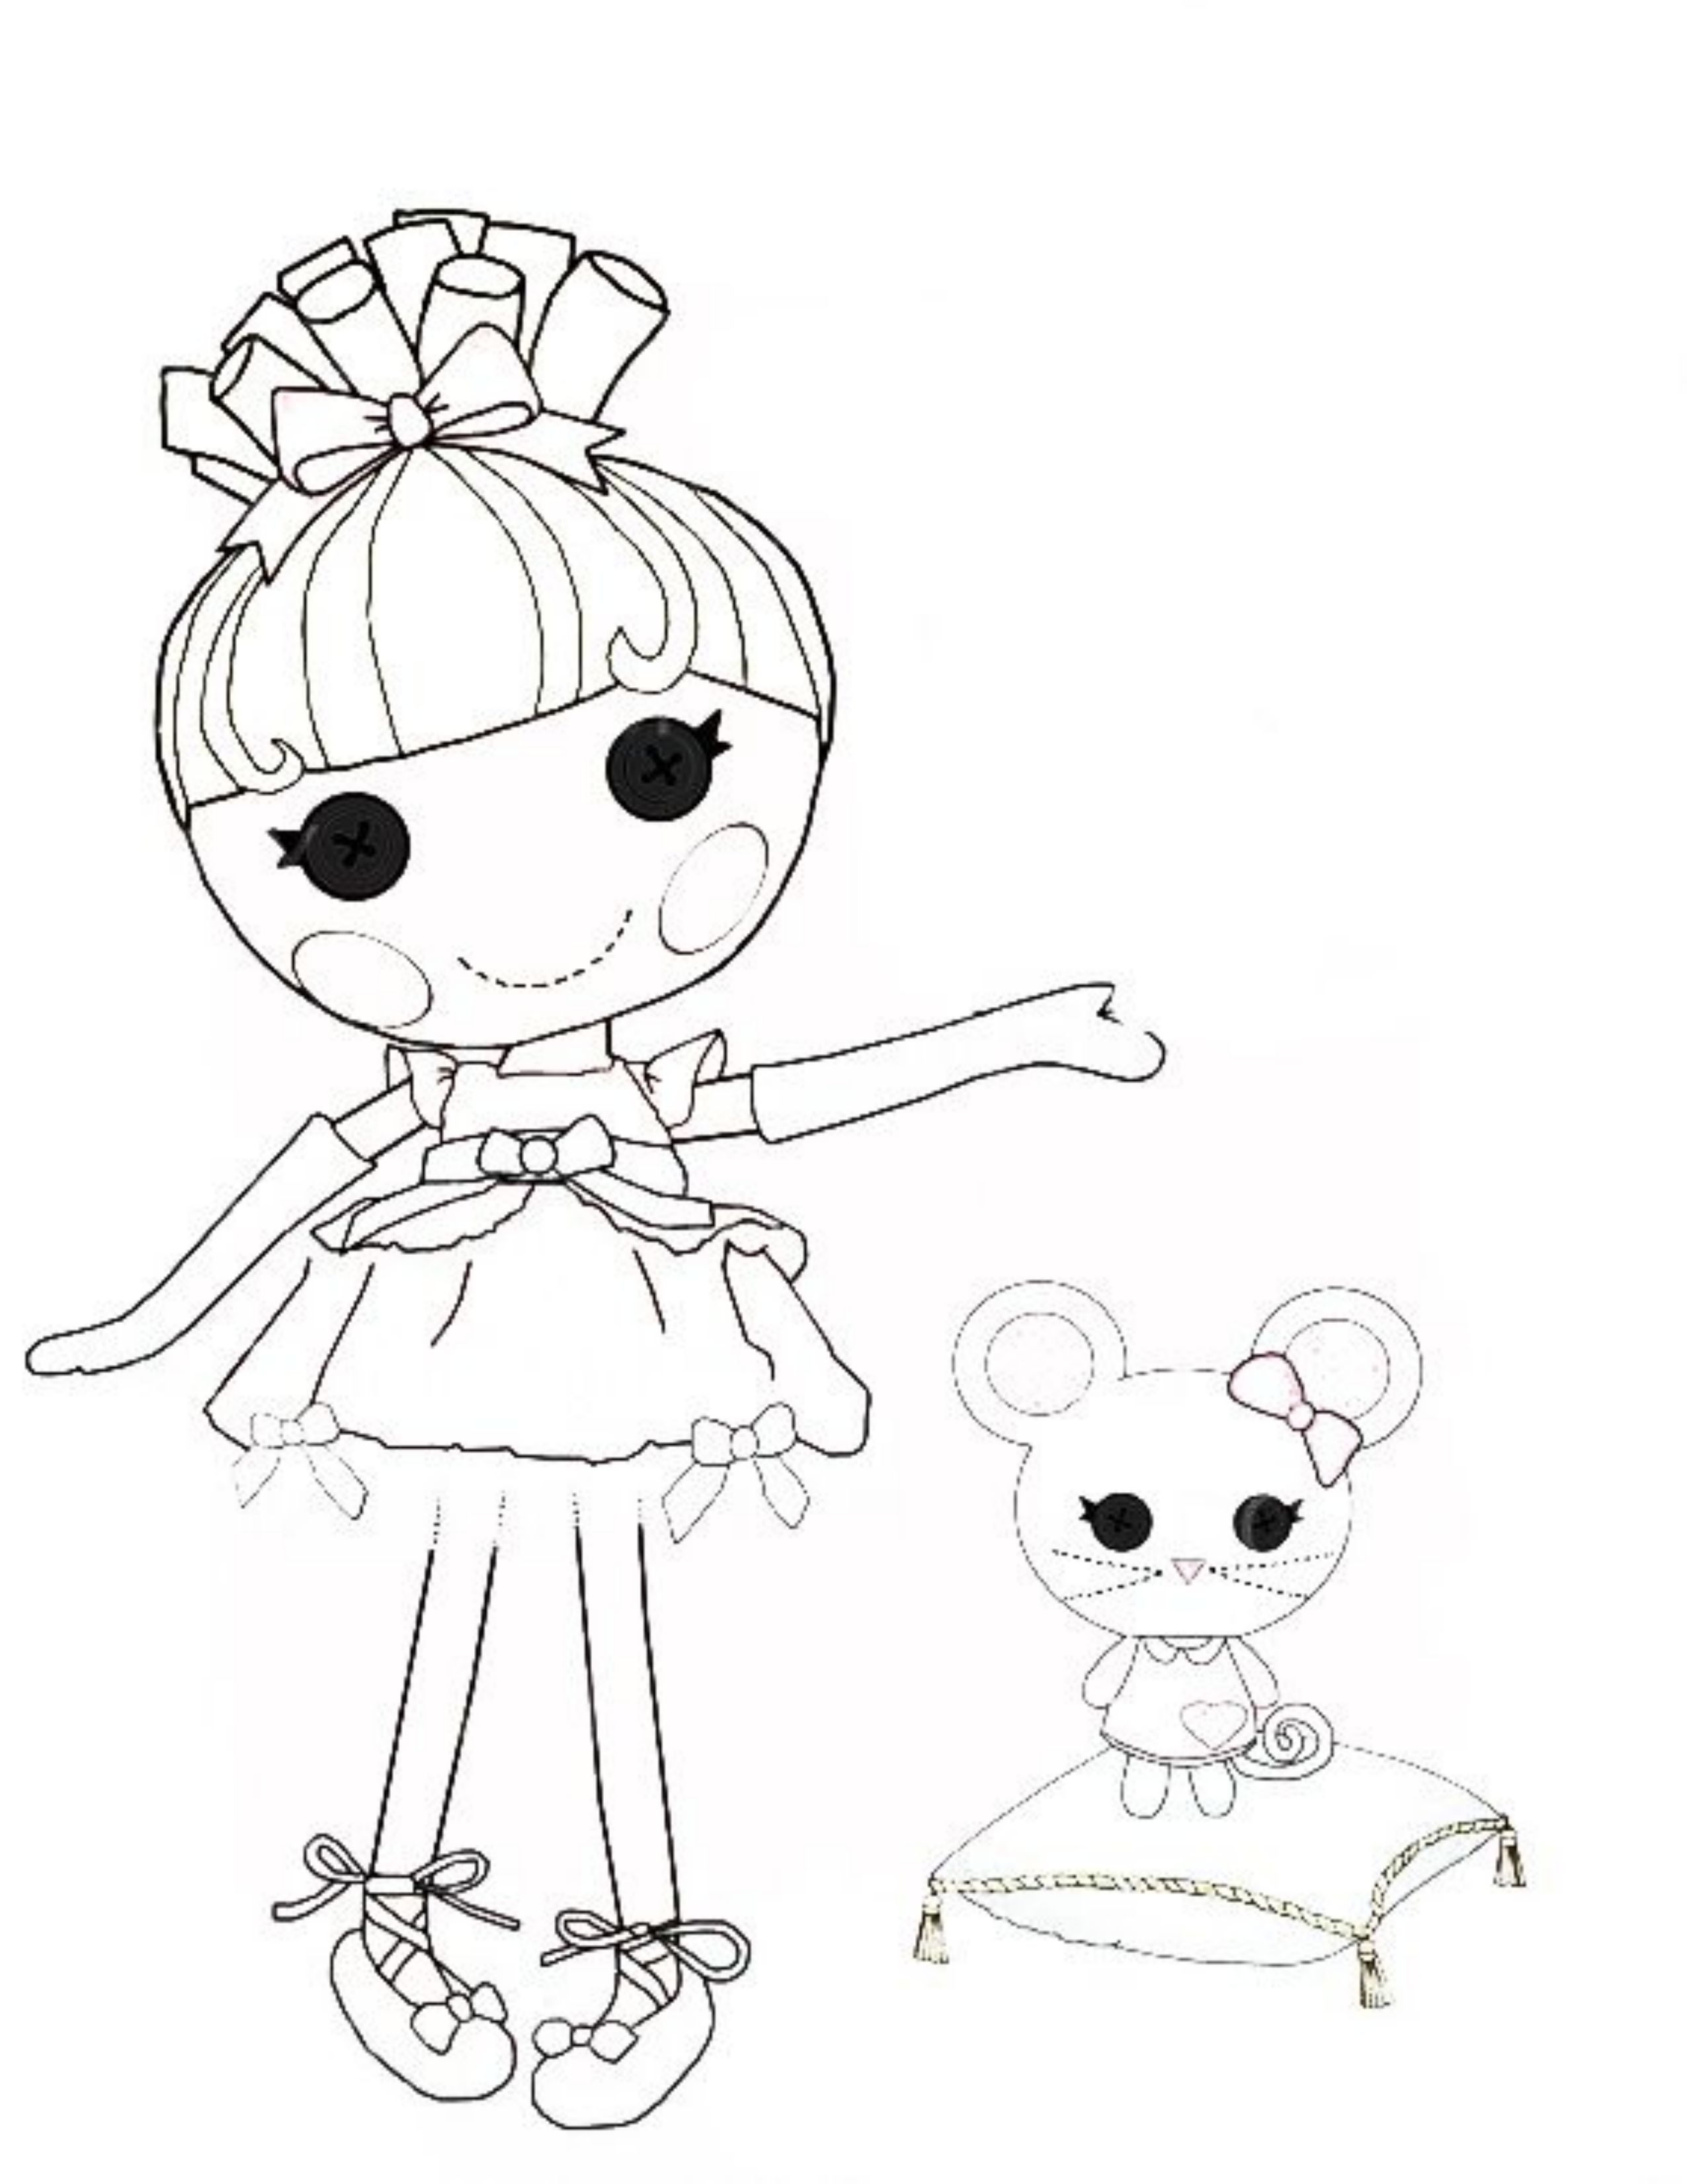 lalaloopsy coloring pages for kids - photo#9